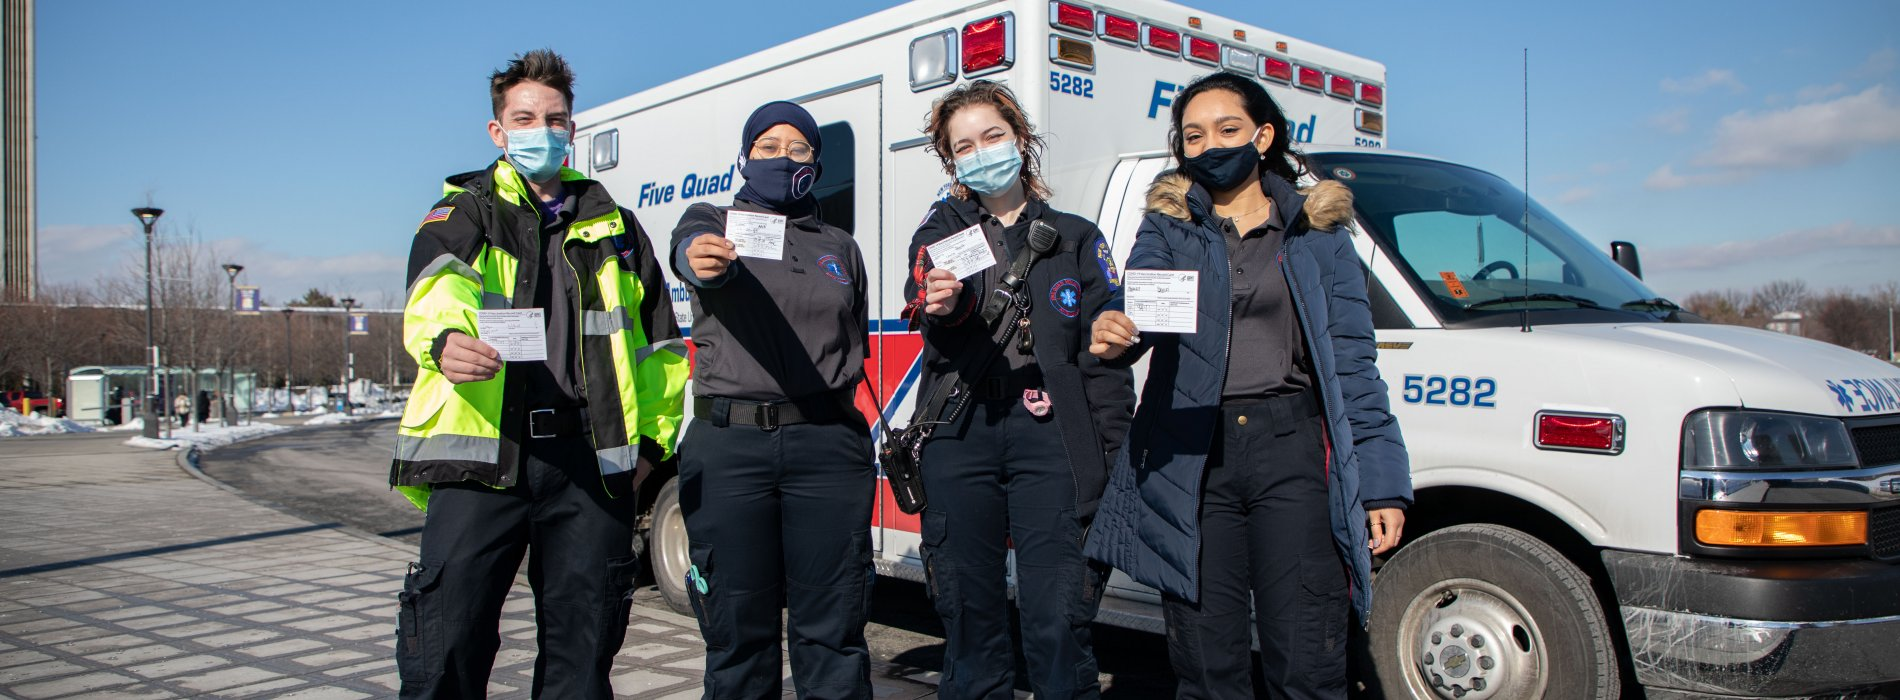 Four student EMTs pose in front of the Five Quad ambulance with their COVID-19 vaccination cards